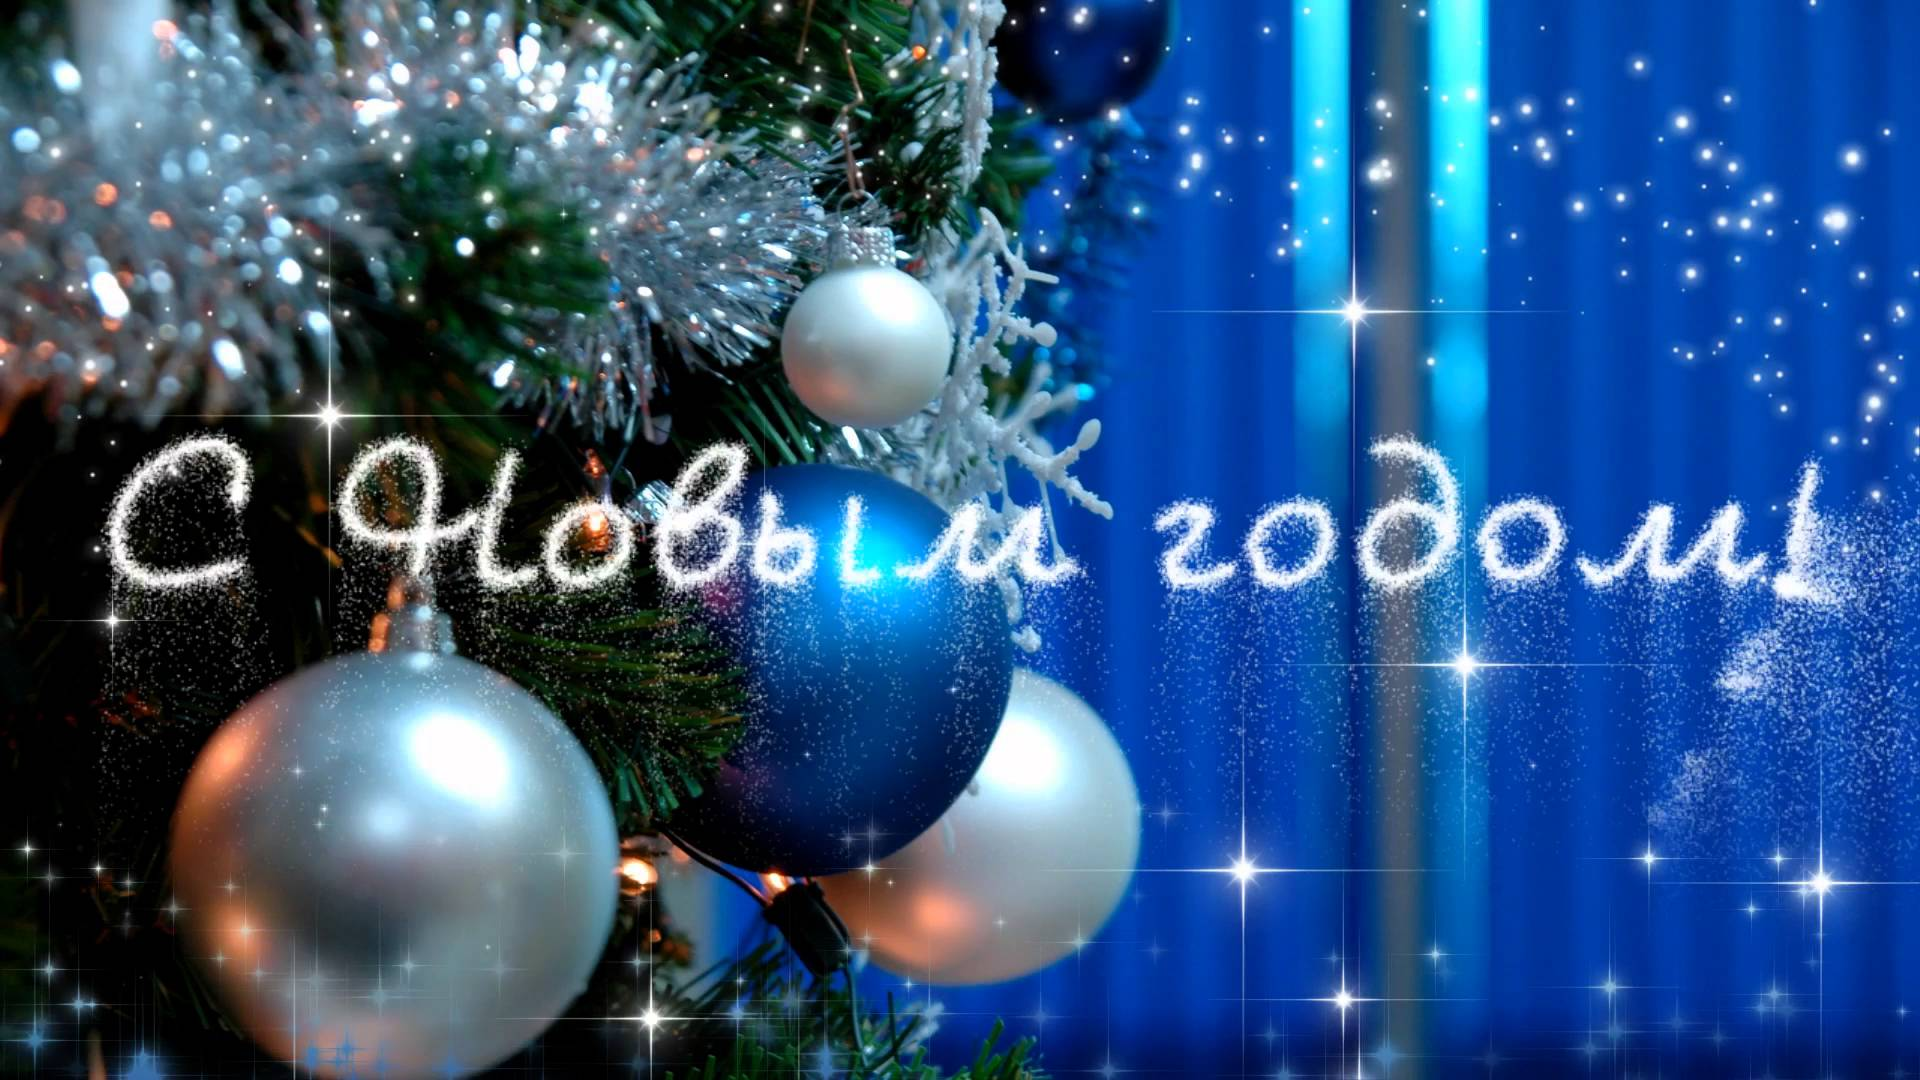 russian new years dialogues learn russian step by step - How To Say Merry Christmas In Russian